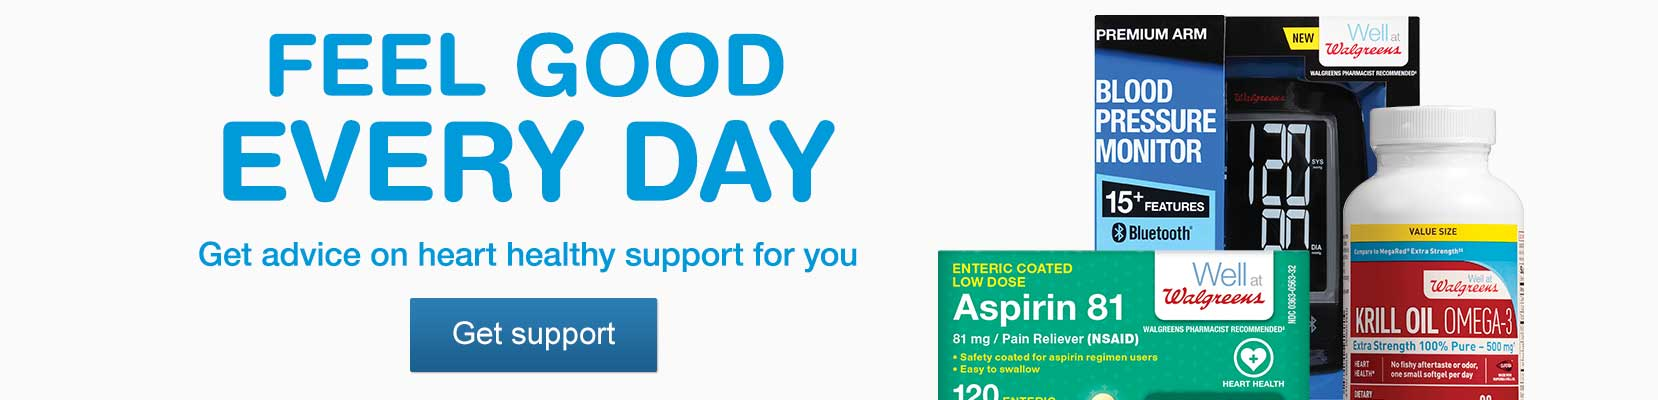 FEEL GOOD EVERY DAY. Get advice on heart healthy support for you. Get support.